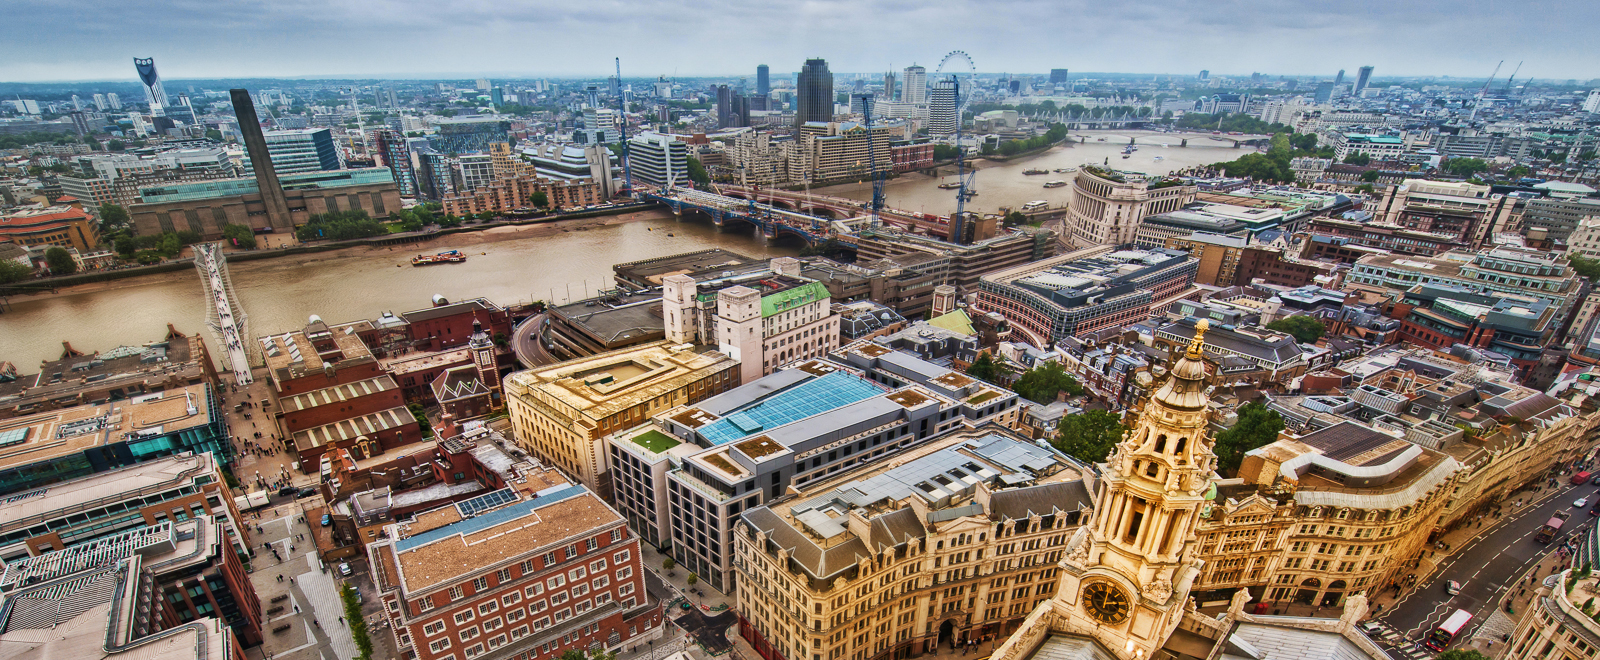 Old London from Above -Trey Ratcliffe